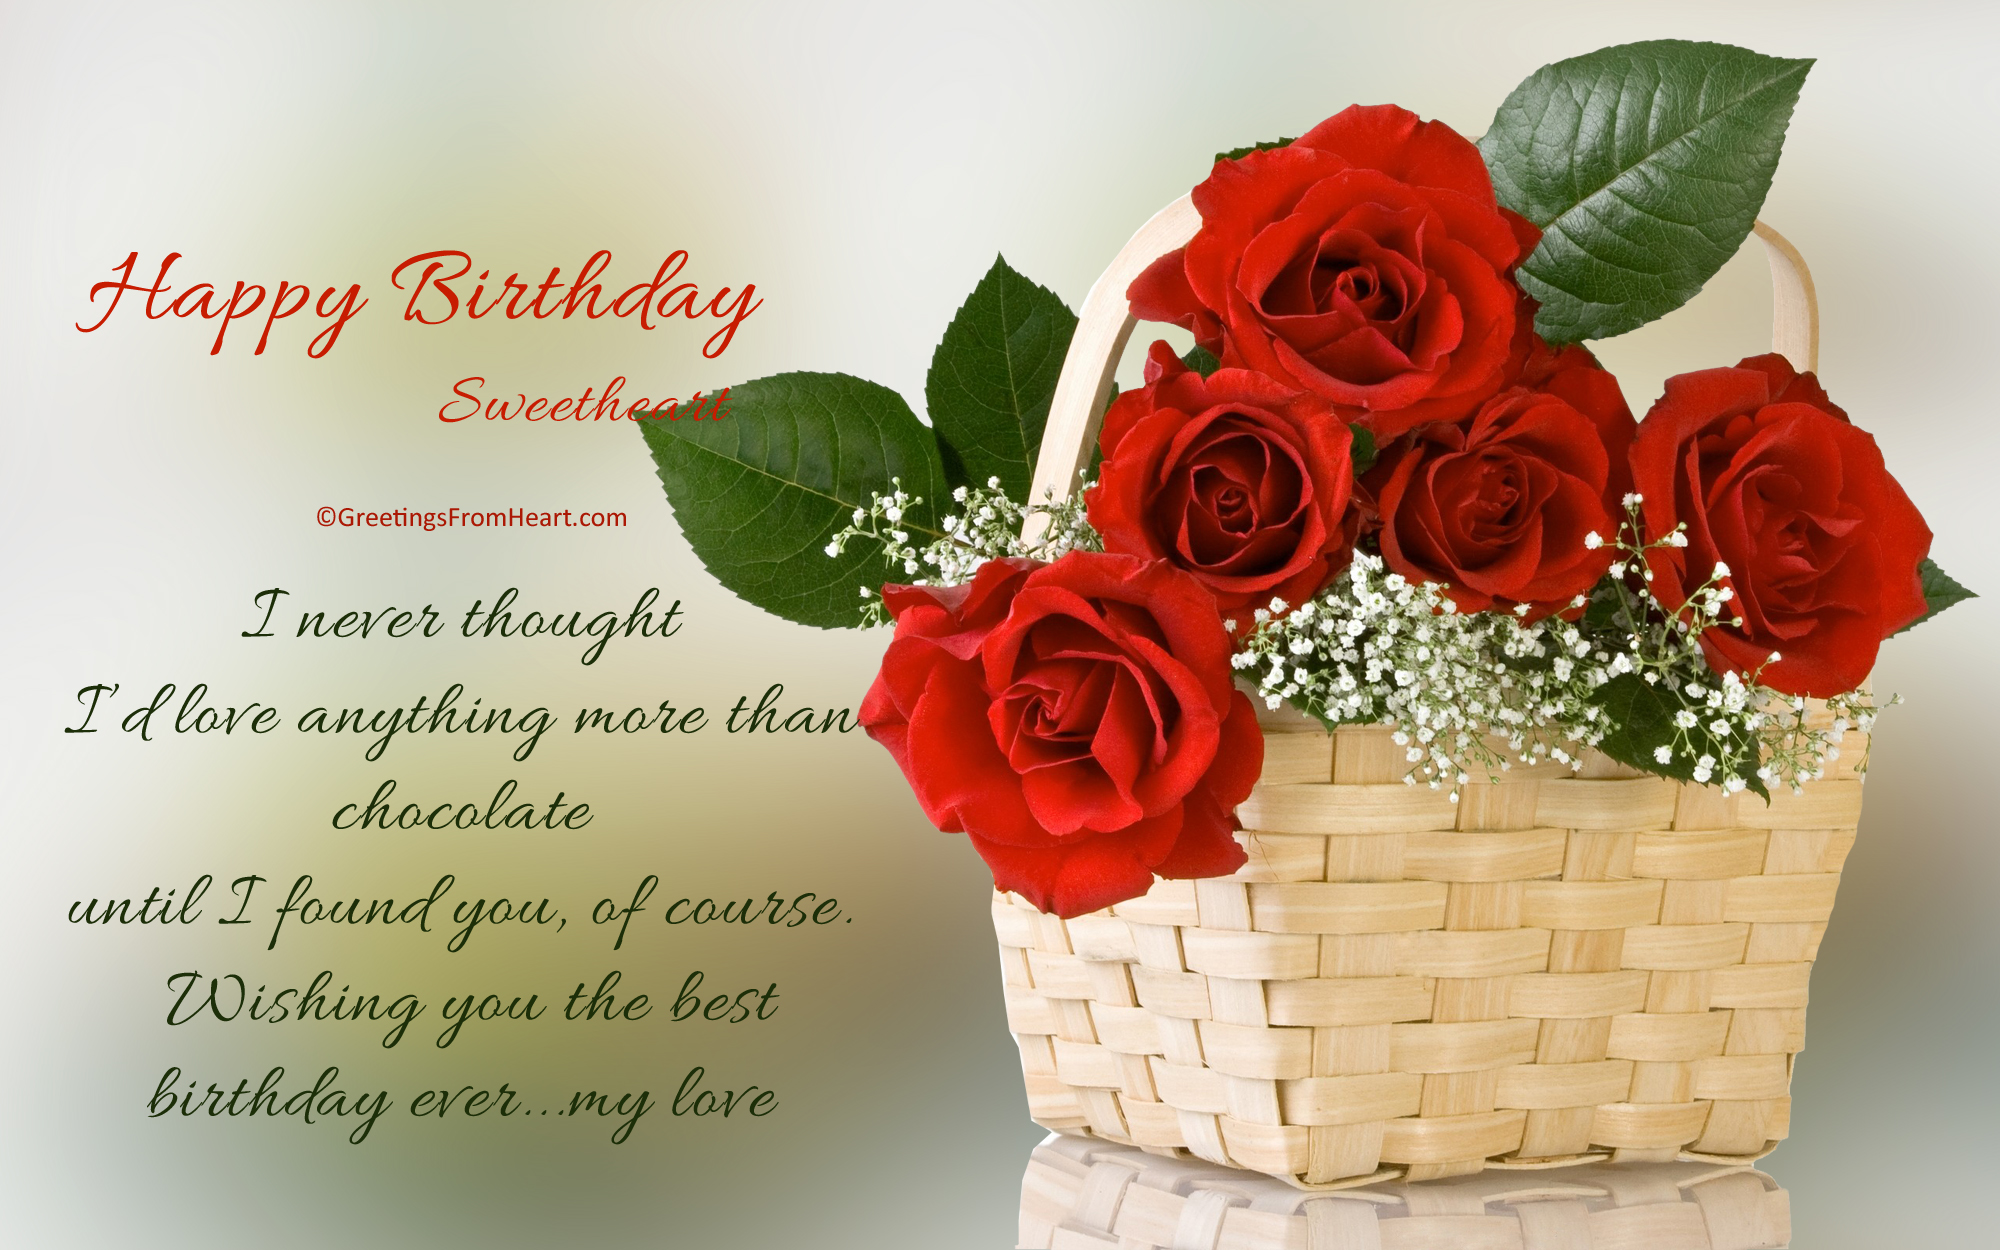 Birthday Greetings For Boyfriend Birthday Greetings For Girl Friend